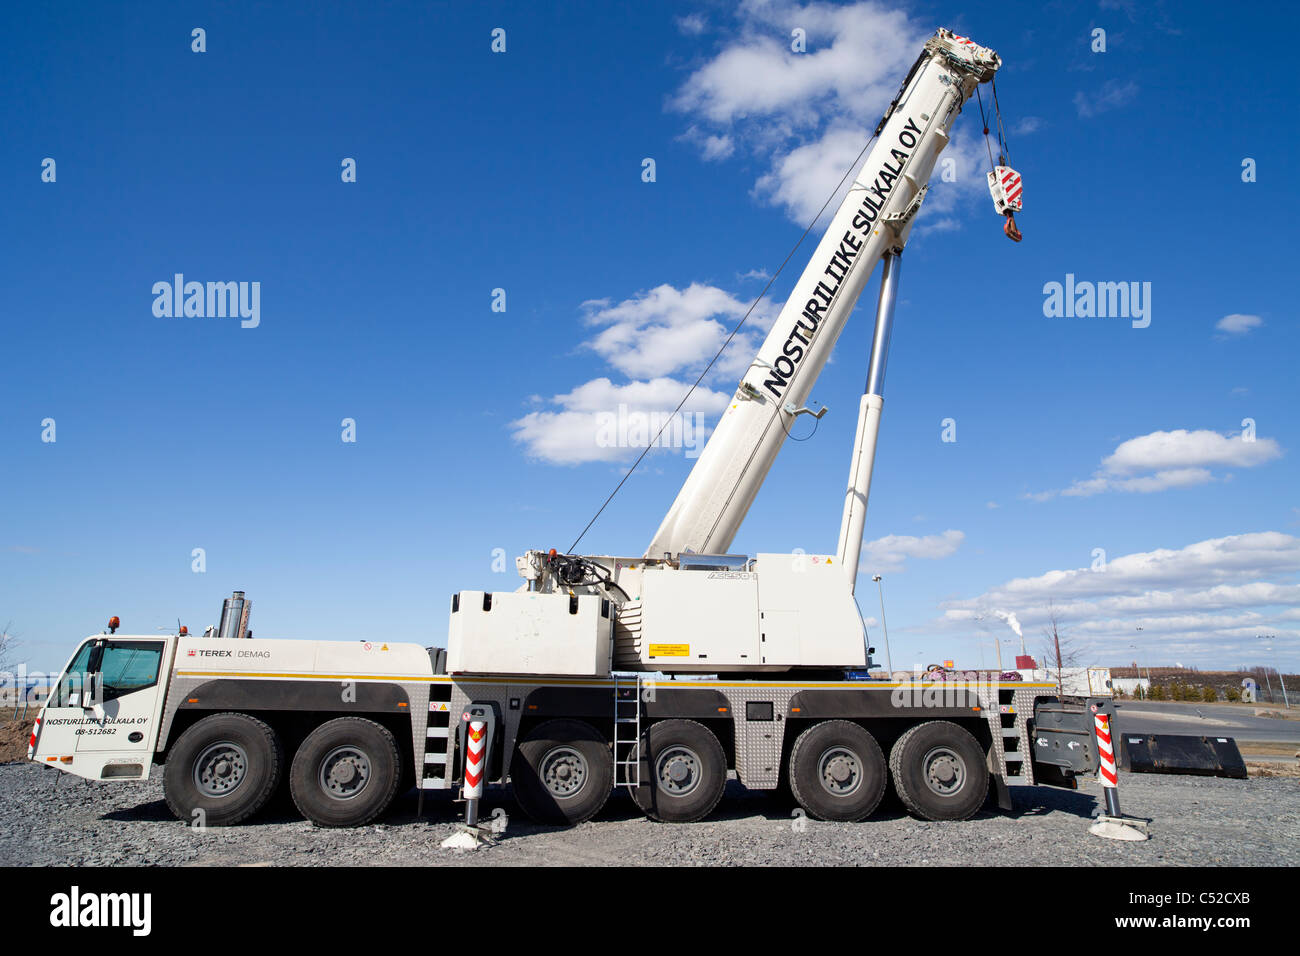 Terex Demag AC 250-1 road mobile crane truck Stock Photo: 37548067